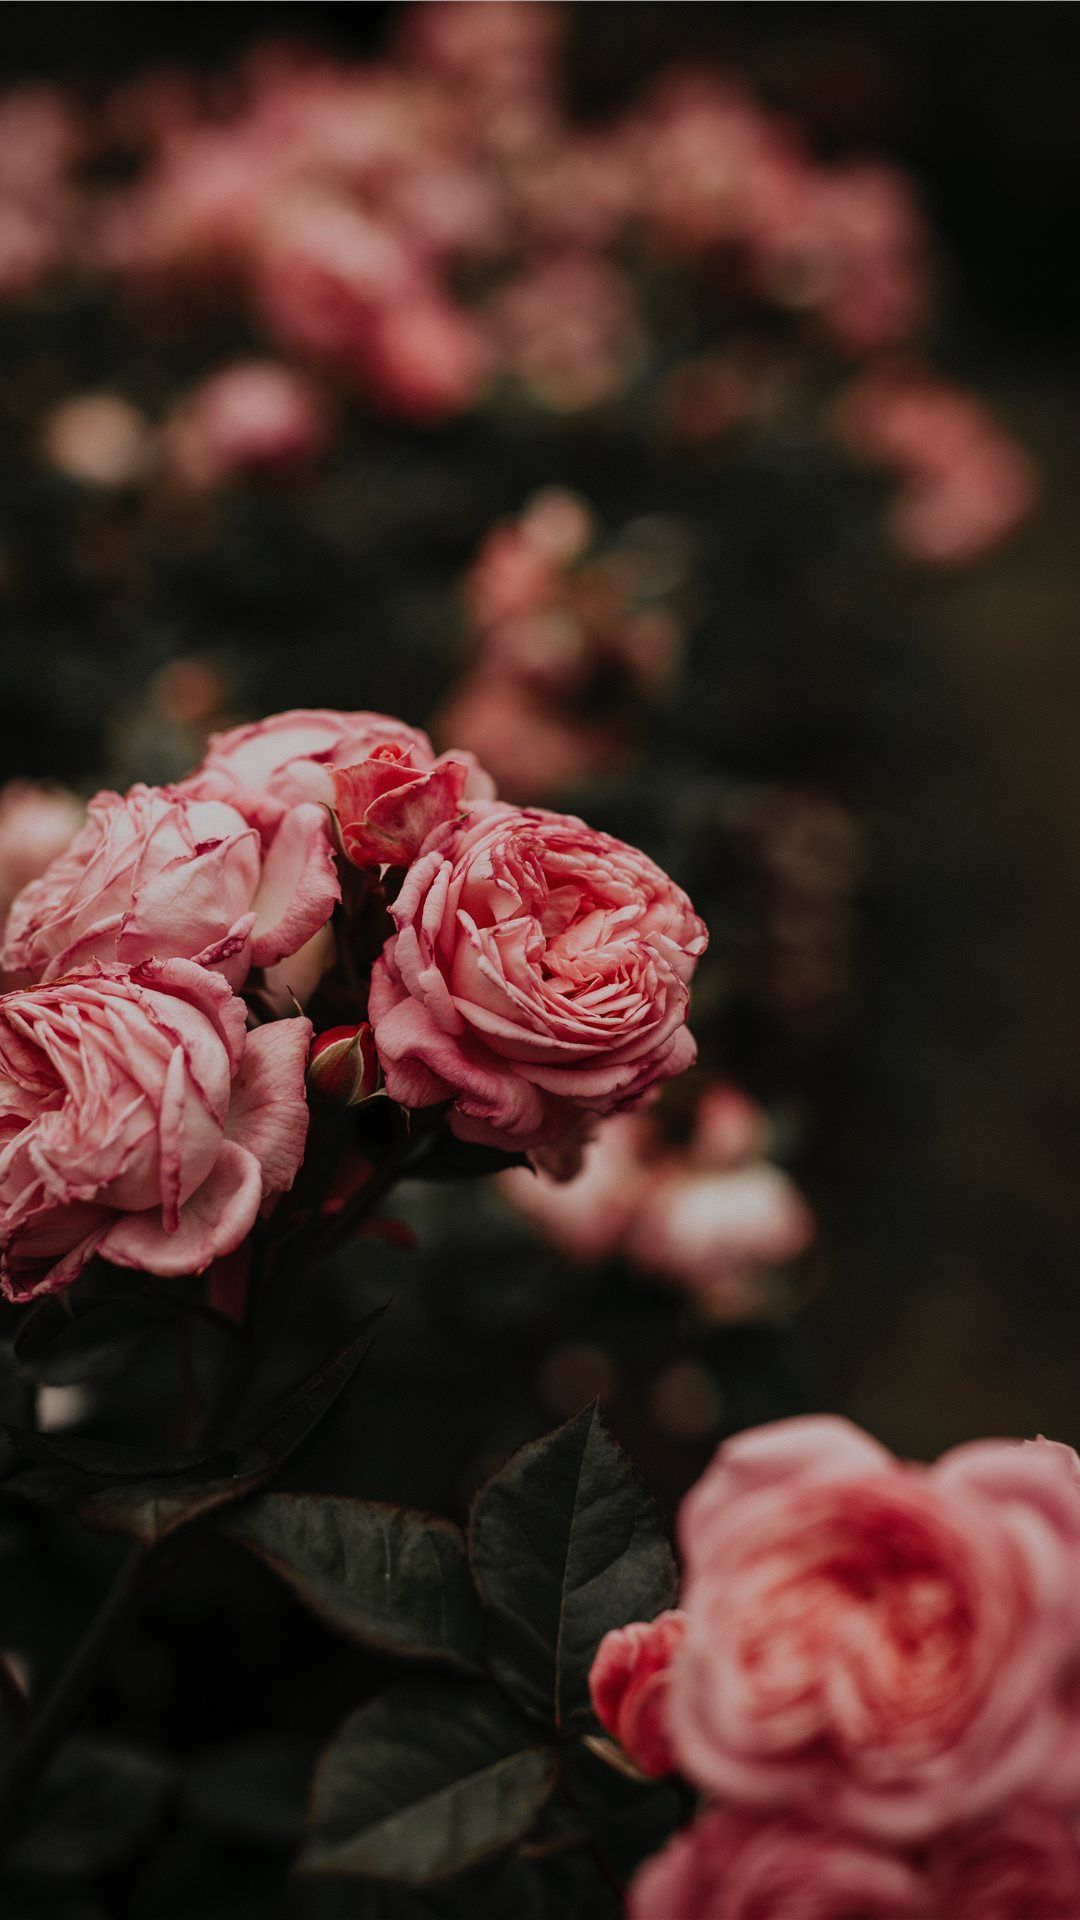 Worlds Best Rose Iphone 8 Wallpapers Fioletovye Piony